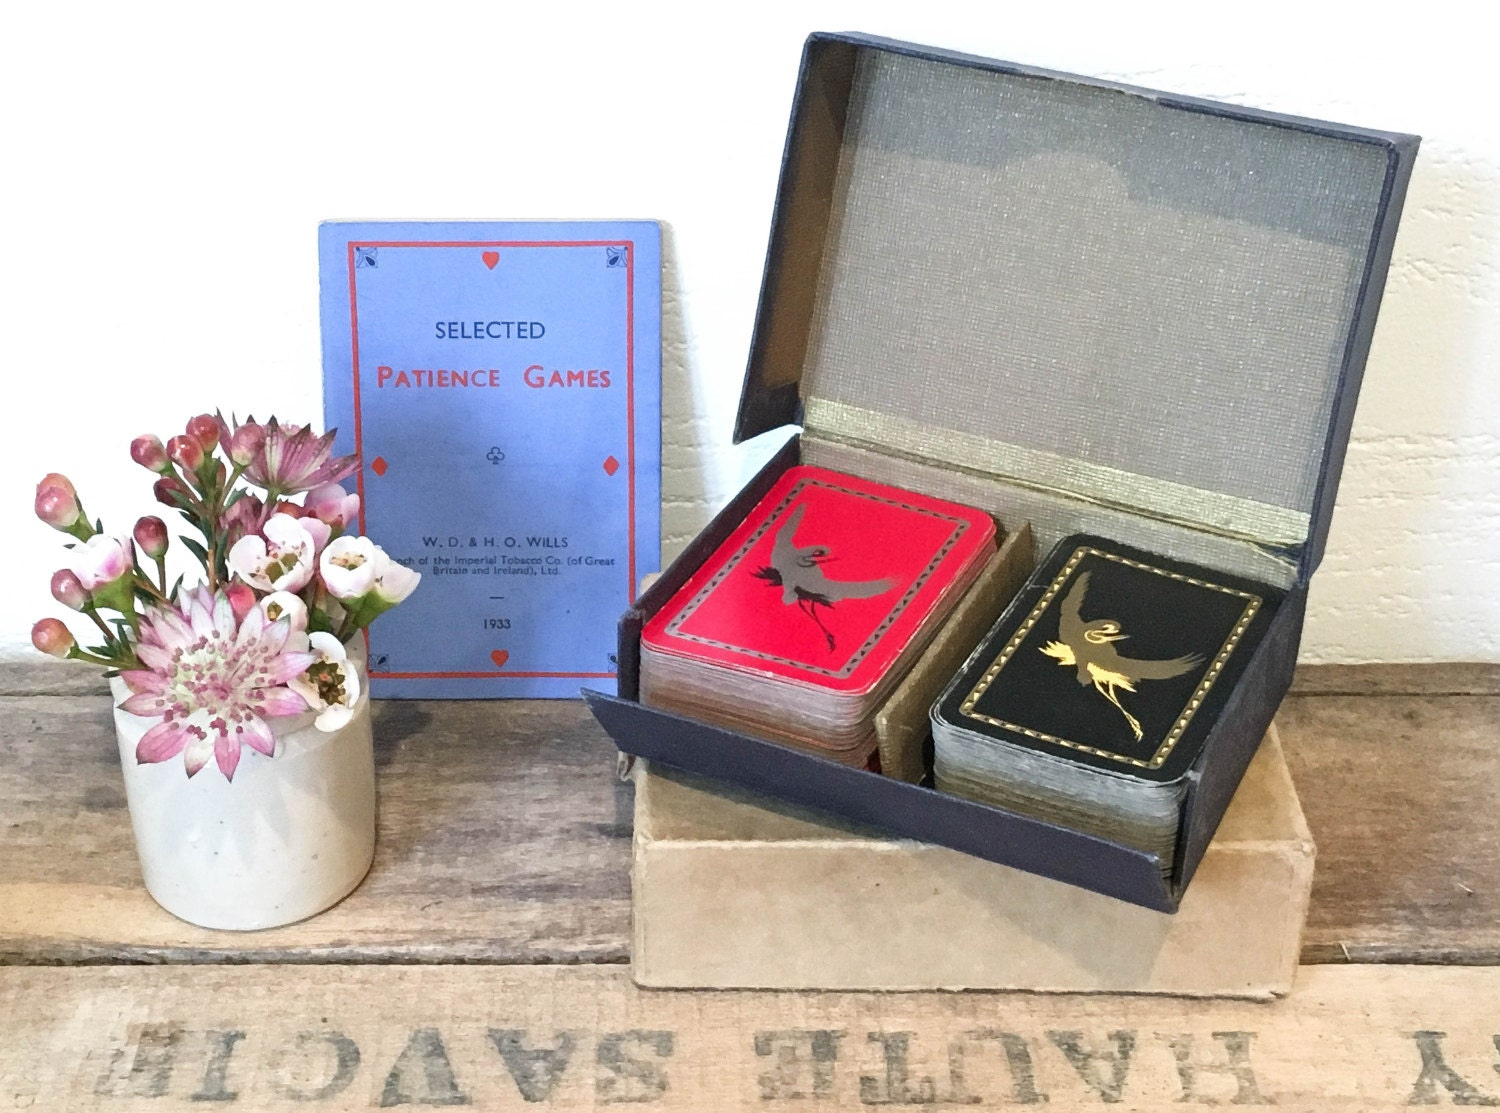 Vintage 1930s Wills Mini Patience Cards in Box Cigarette Promotion Card Games Boxed Card Sets